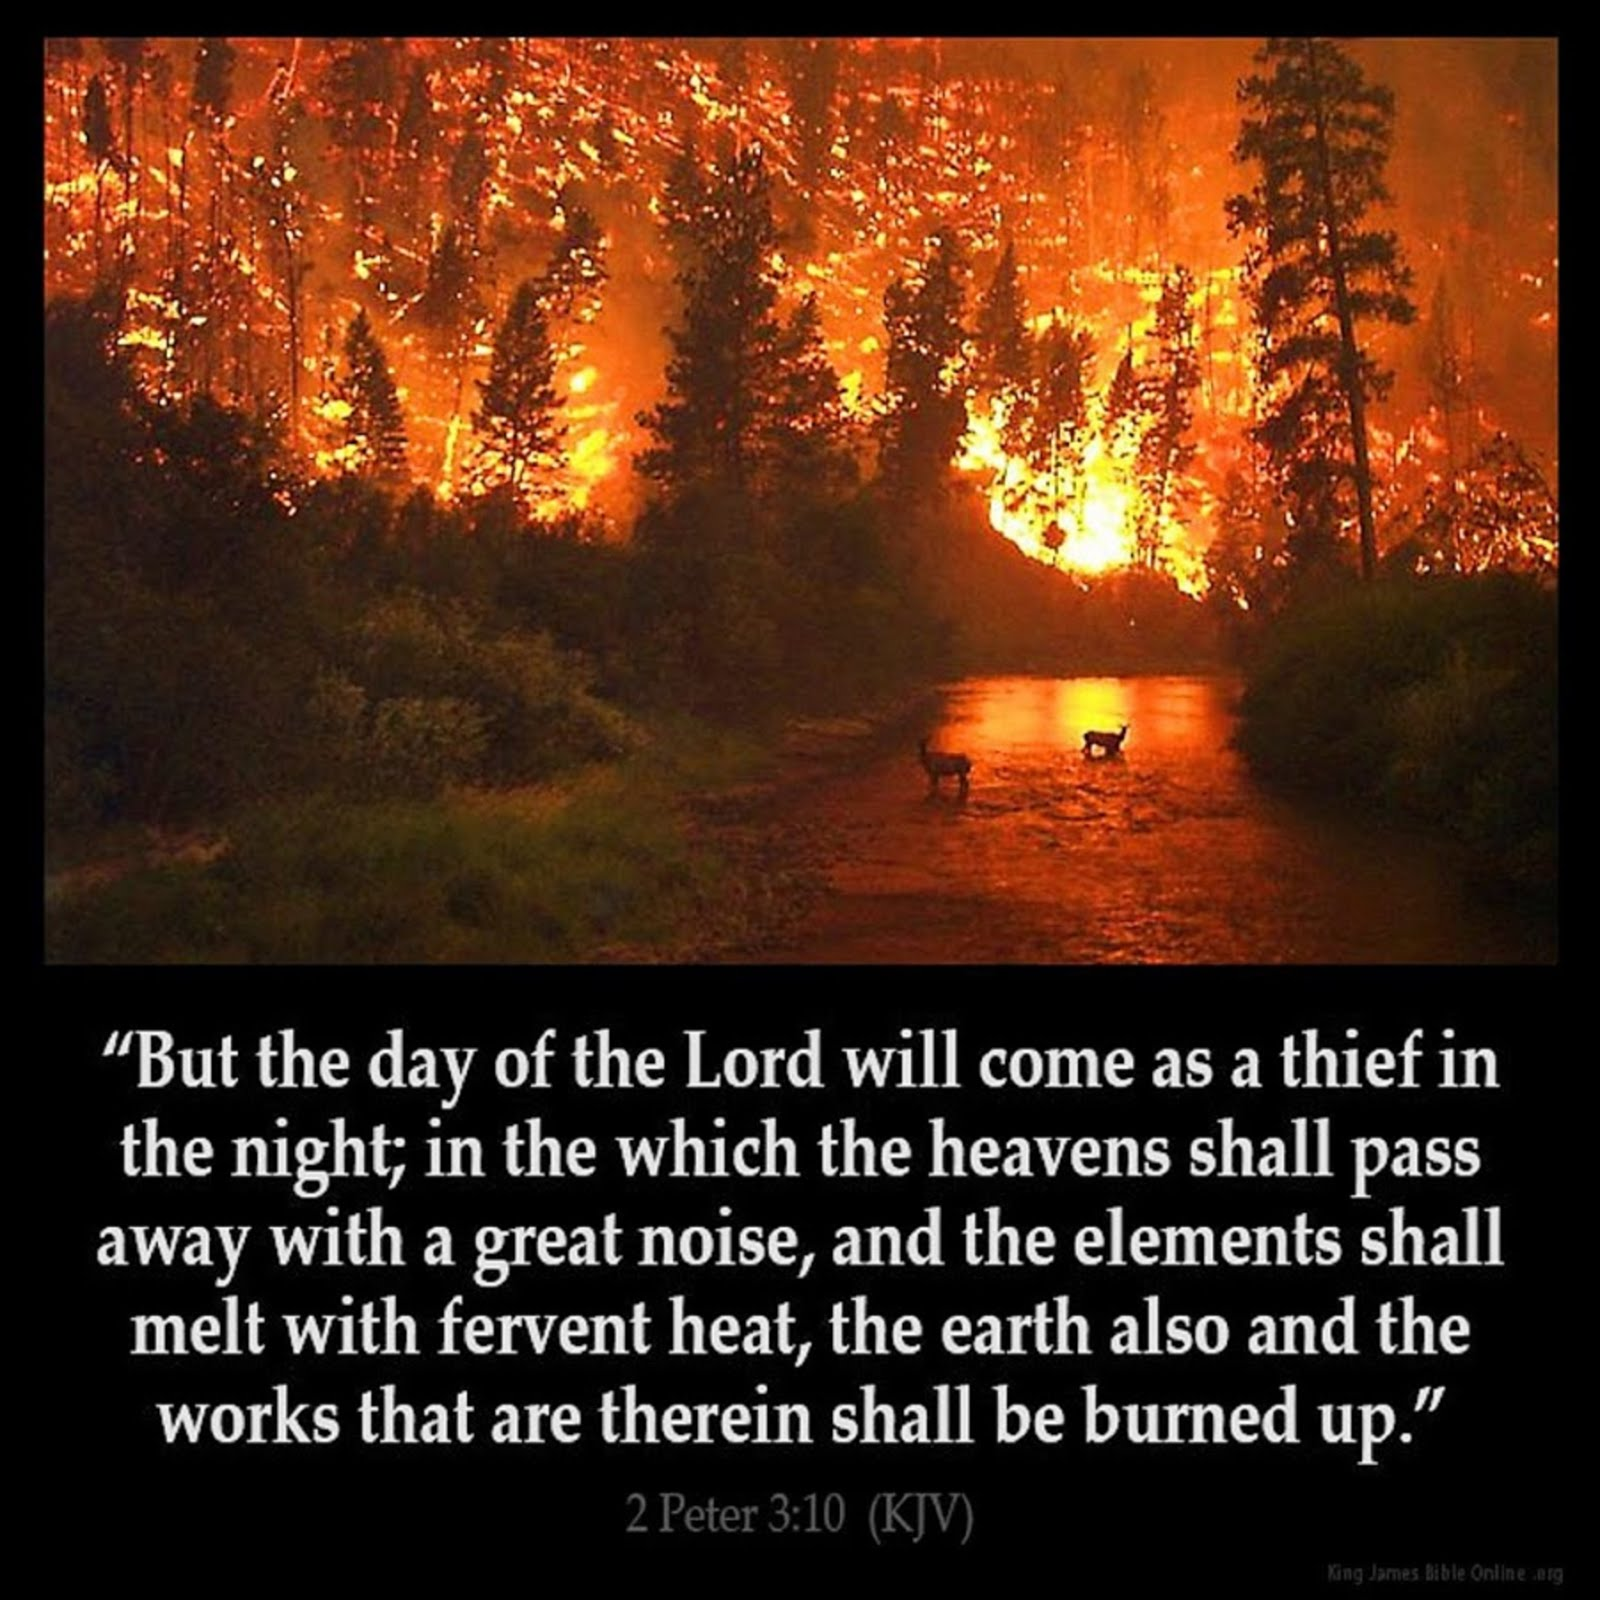 THE DAY OF THE LORD WILL COME LIKE A THIEF IN THE NIGHT